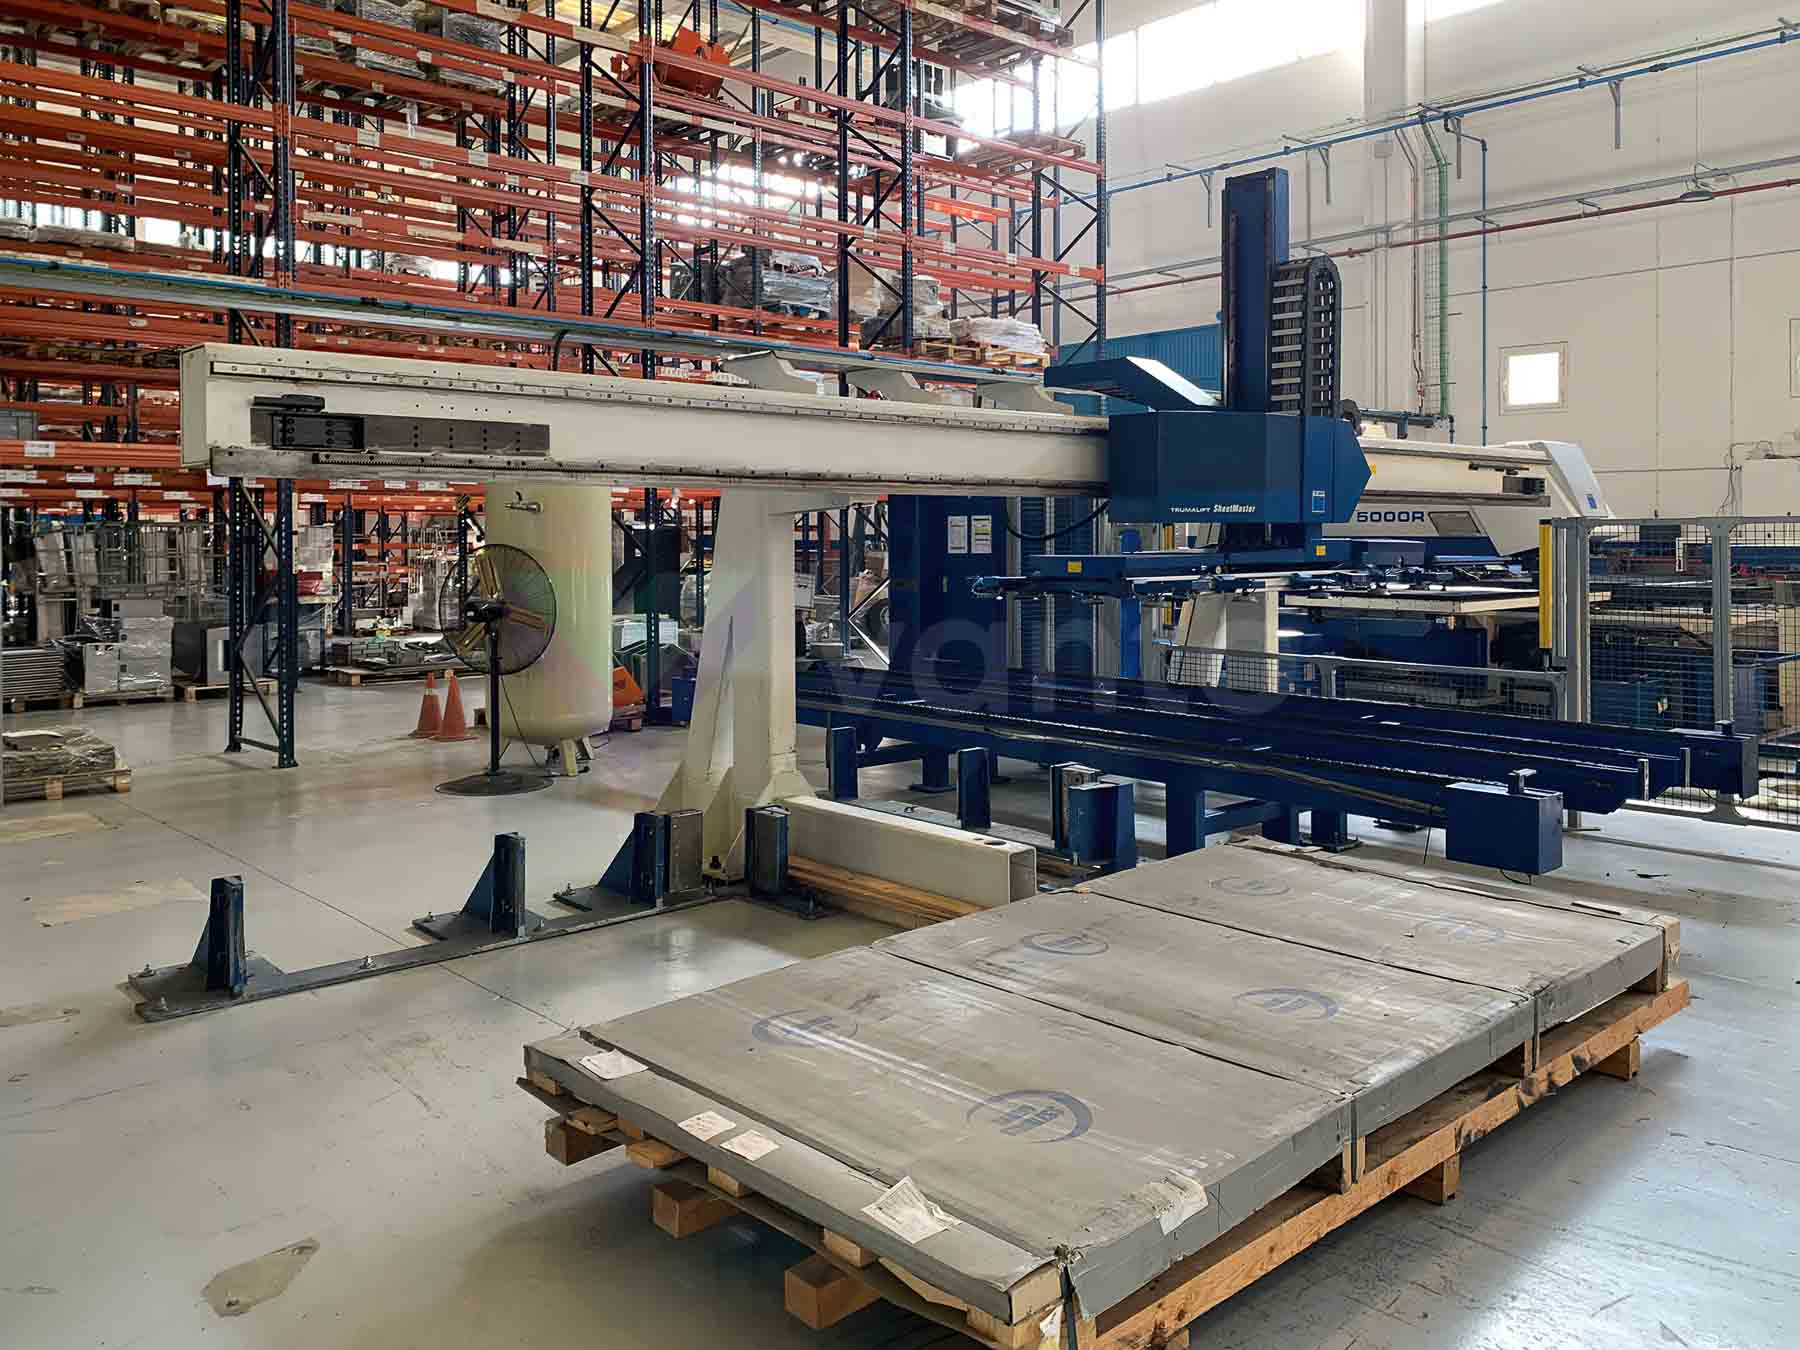 Poinçonneuse CNC TRUMPF TRUMATIC 5000R (2007) id10521